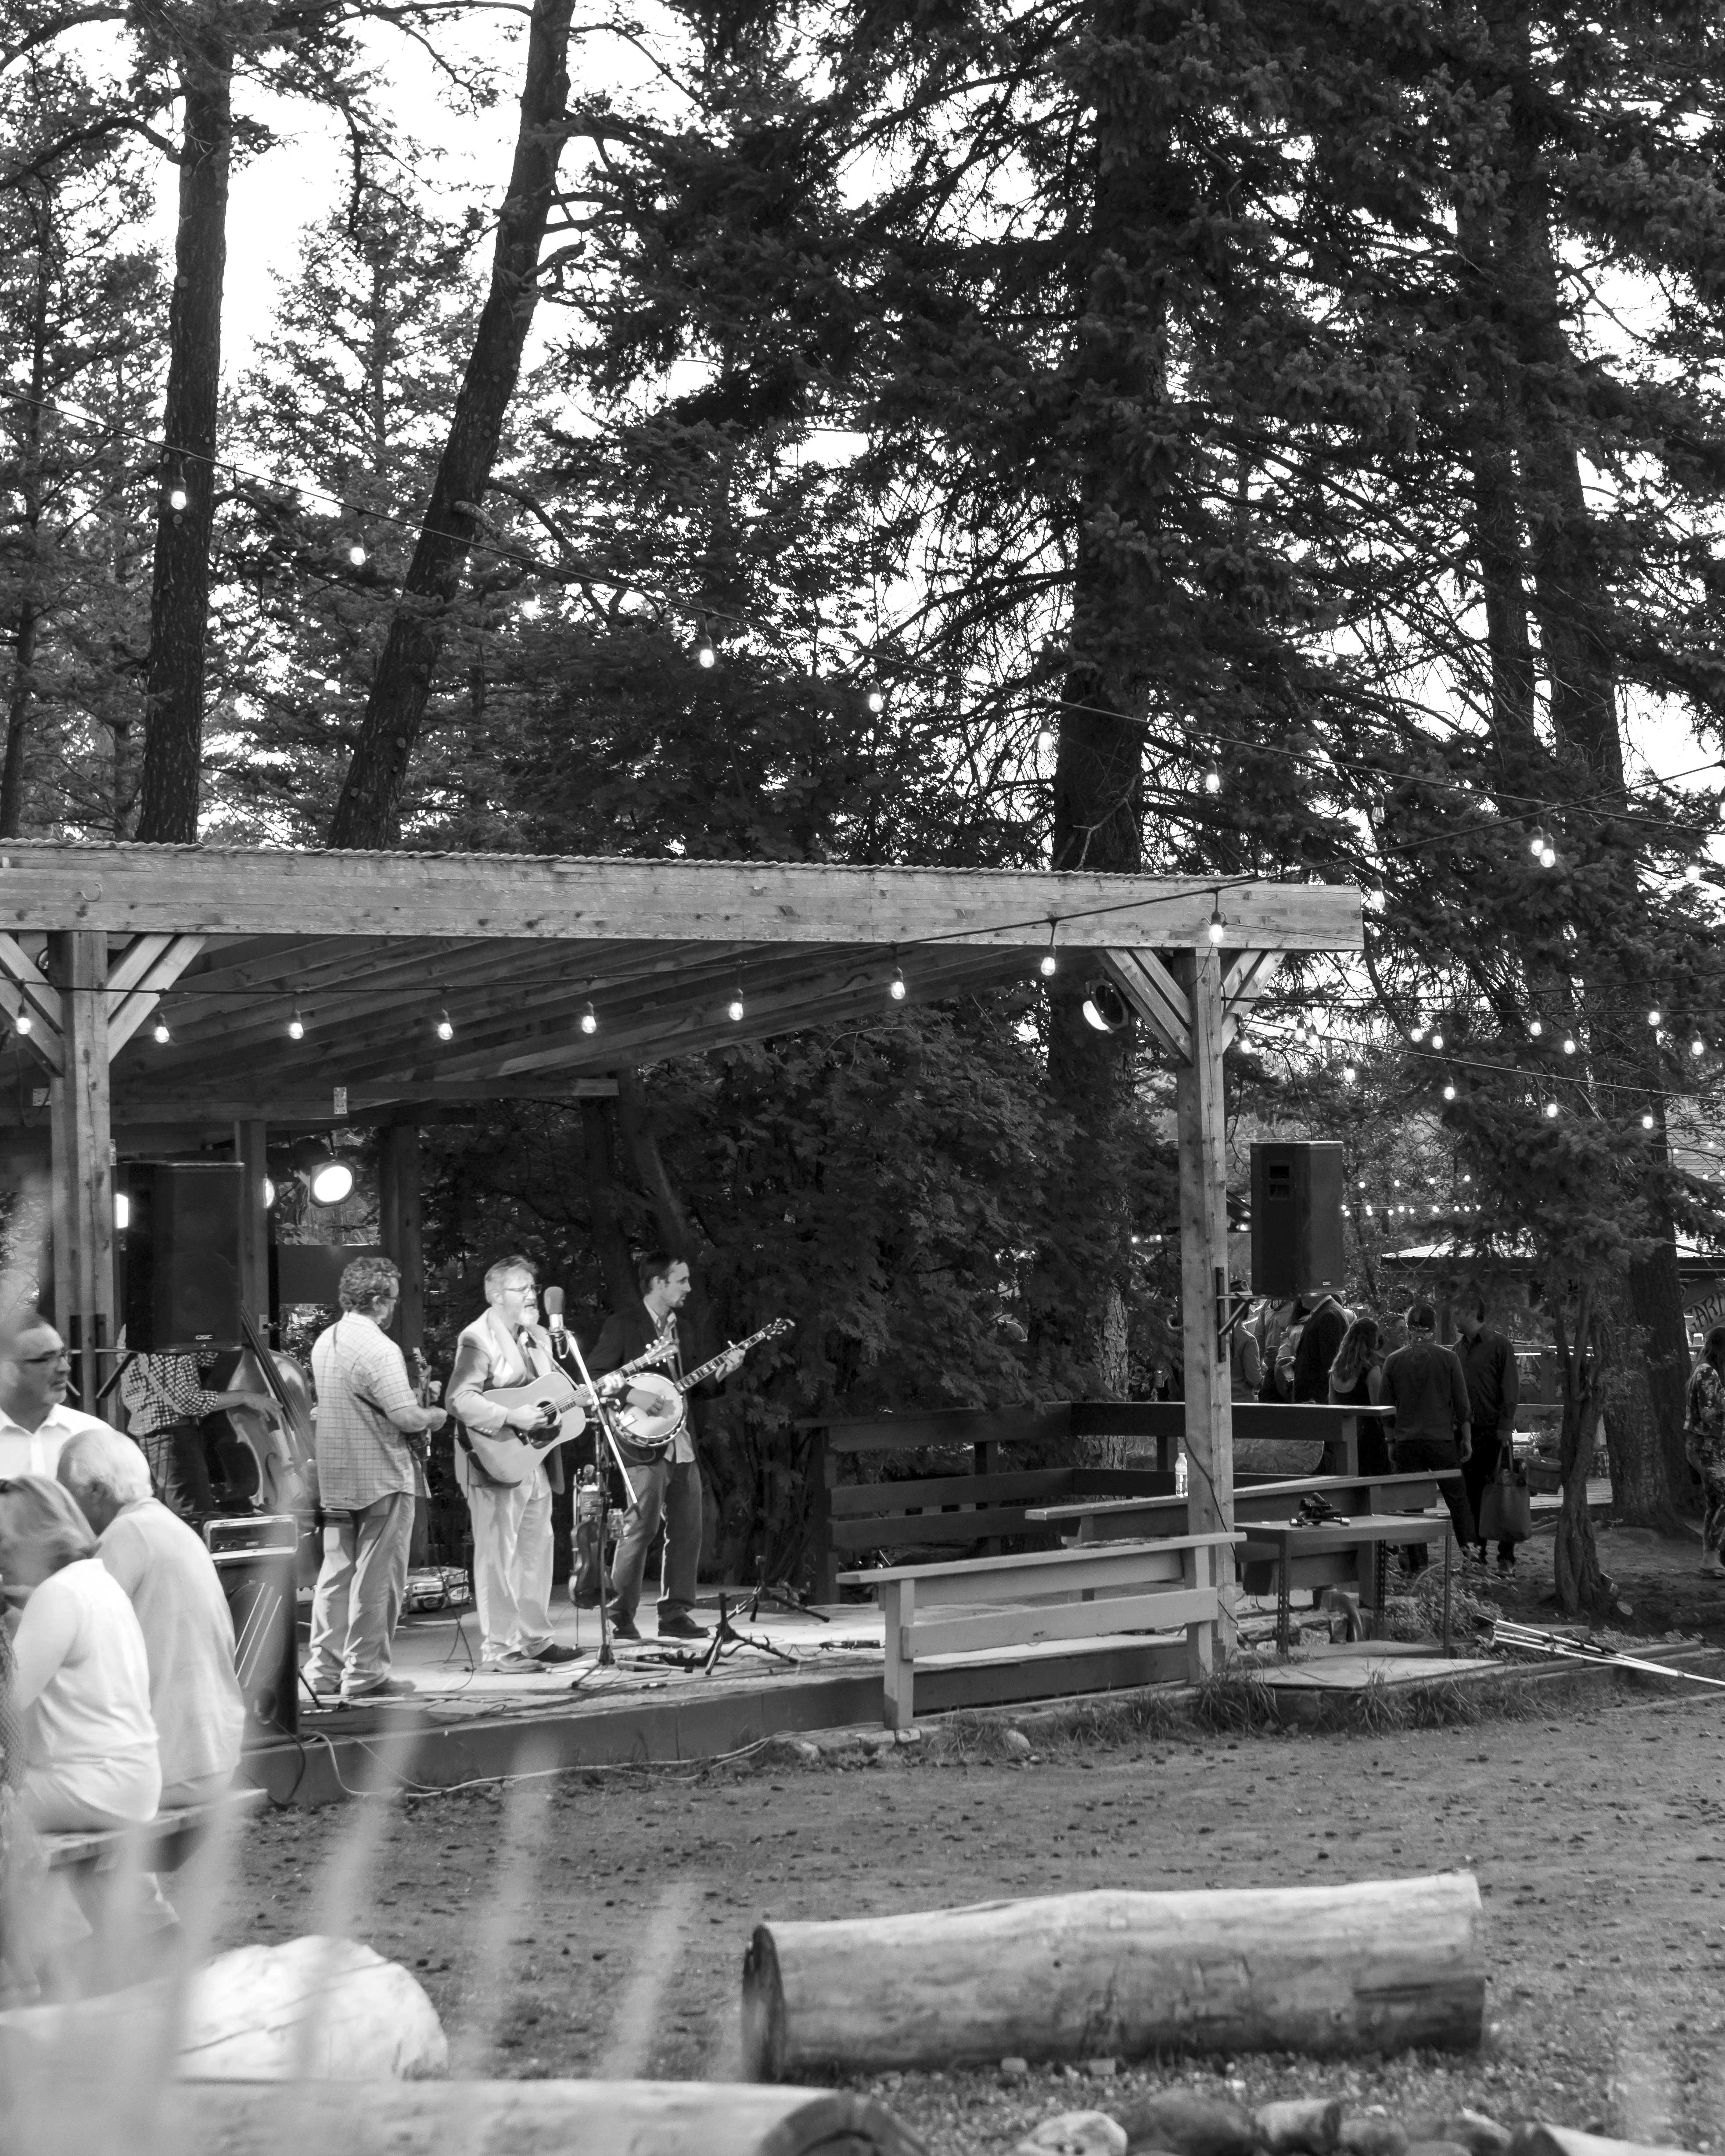 band playing outdoor